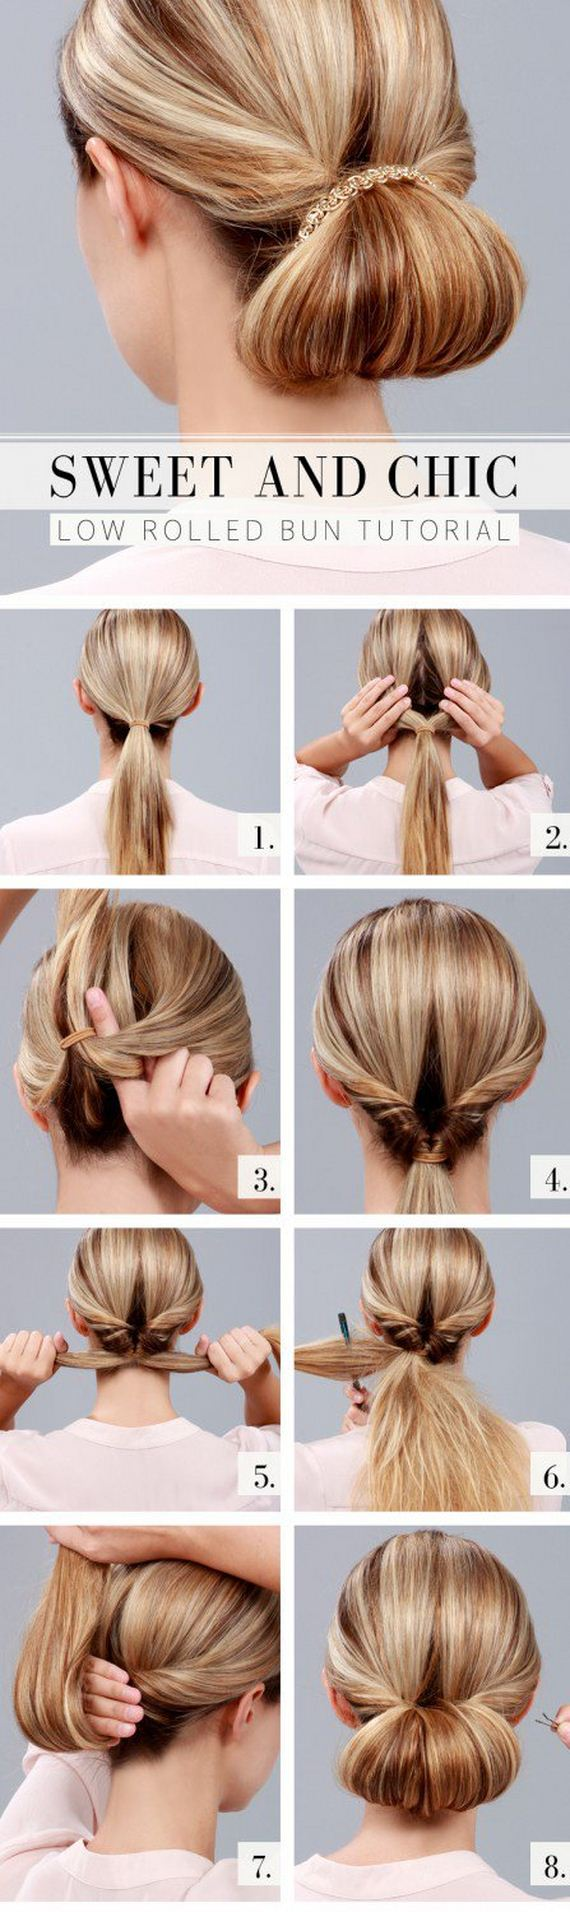 07-DIY-Hairstyles-for-Long-Hair